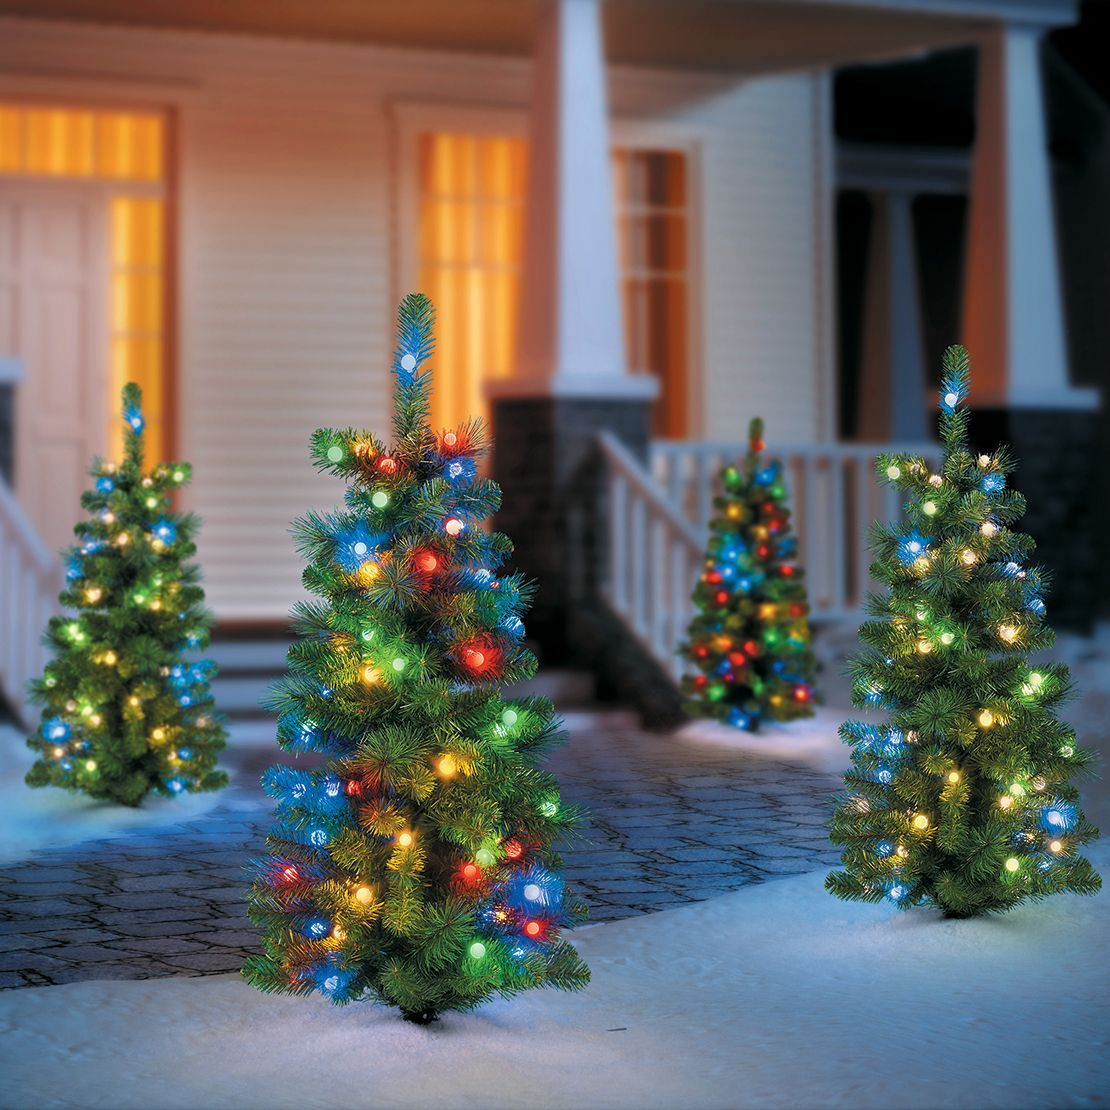 Light The Path To Your House And Get Guests In The Holiday Spirit Holiday Decorations Christmas Outdoor Outdoor Christmas Tree Decorating With Christmas Lights